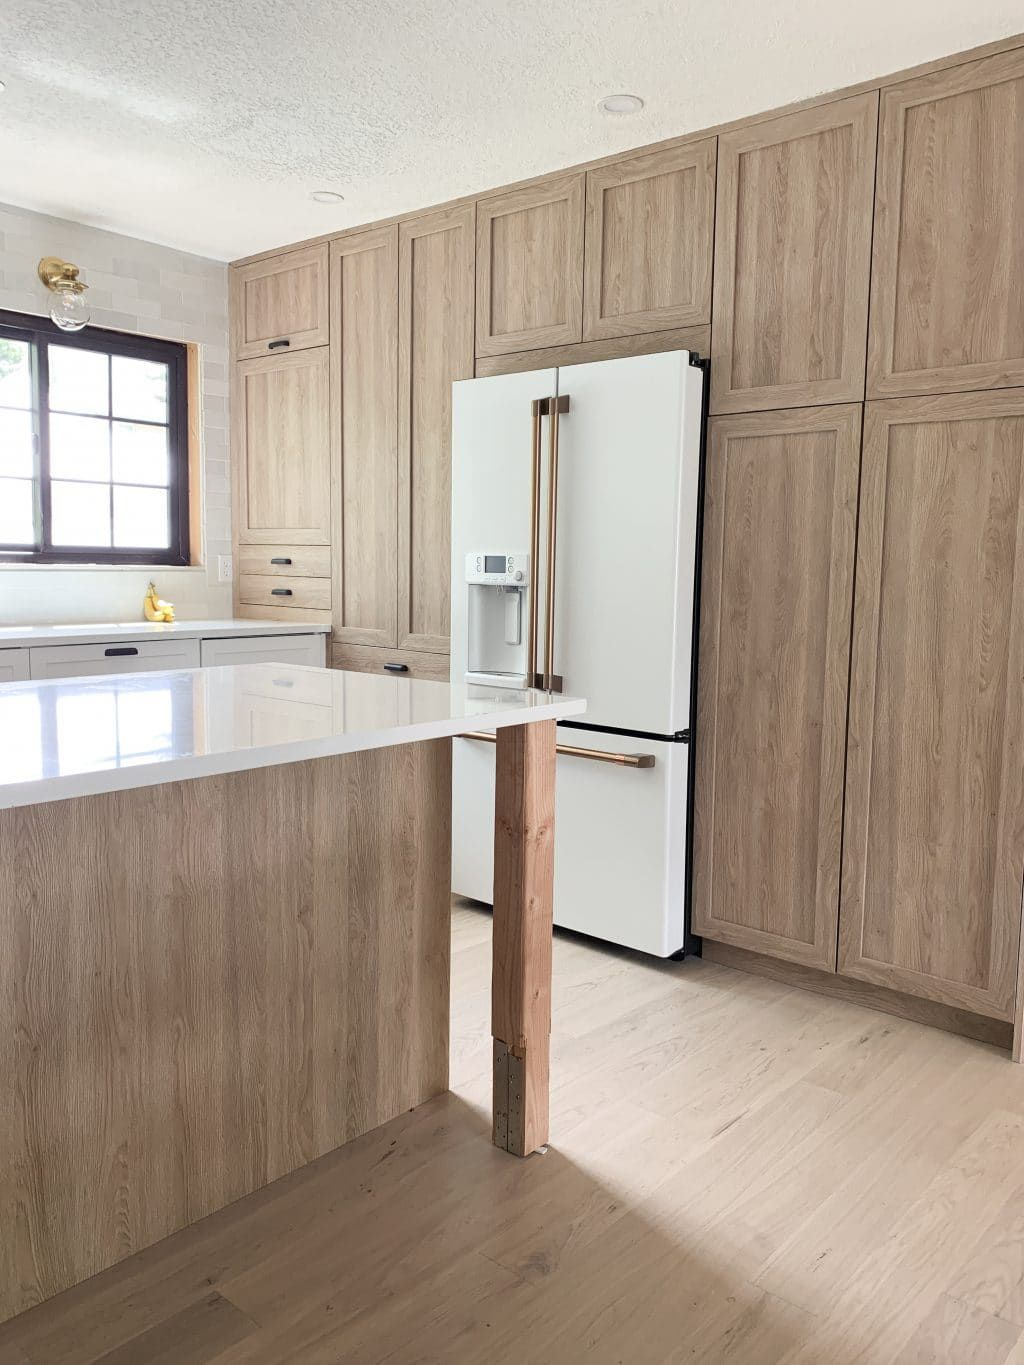 Everything You Need To Know About Using Semihandmade Fronts With Ikea Cabinets And Our Cove Line In The Fullmer Kitchen Ikea Kitchen Replacement Kitchen Doors Ikea Kitchen Cabinets